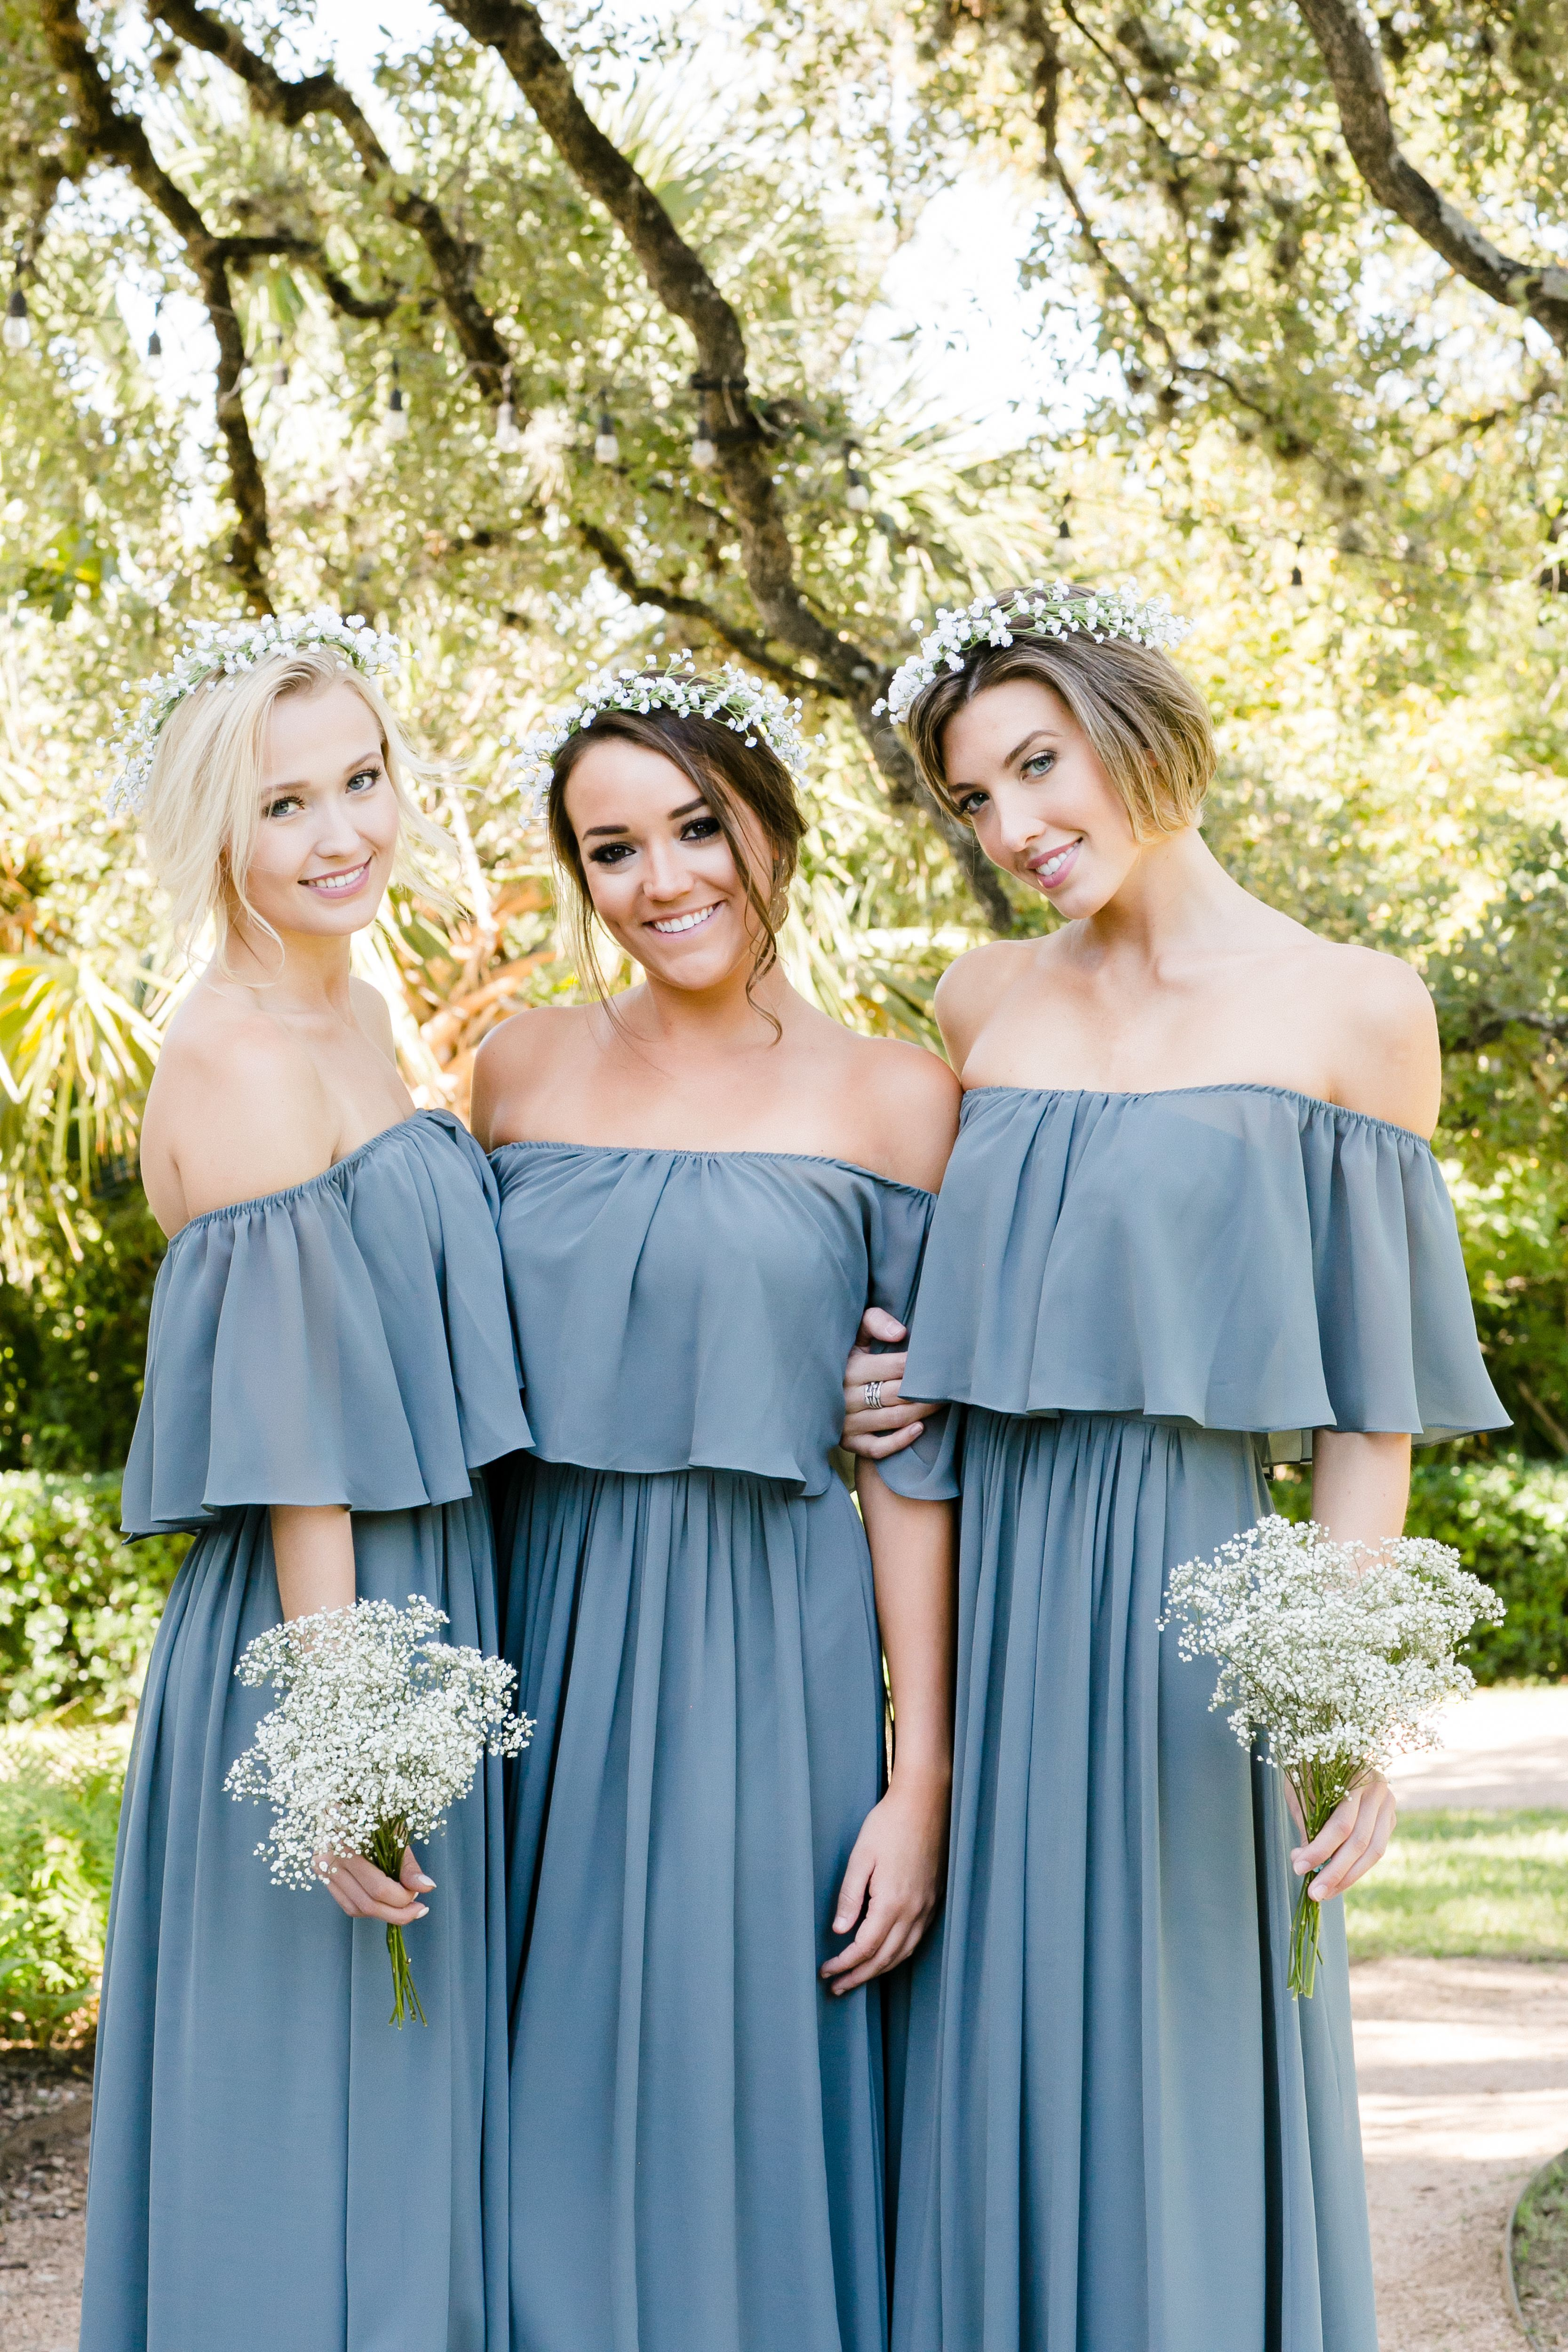 Boho off the shoulder bridesmaid dress, Abigail, from Revelry looks ...